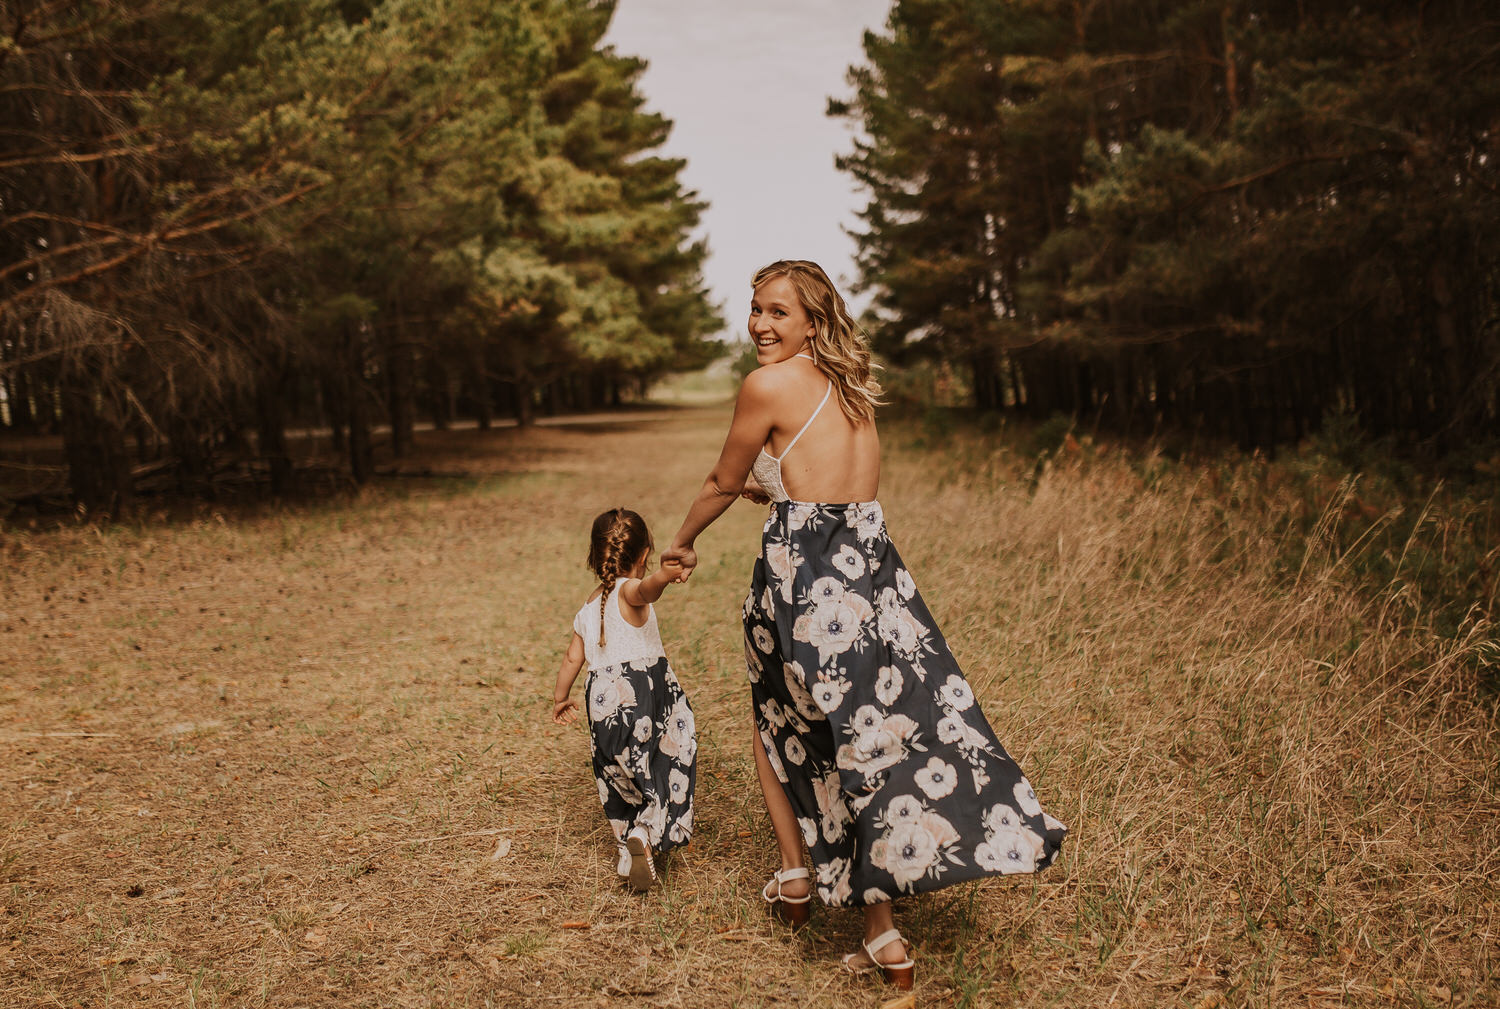 Chantal+Izzy_FamilySession_19.jpg